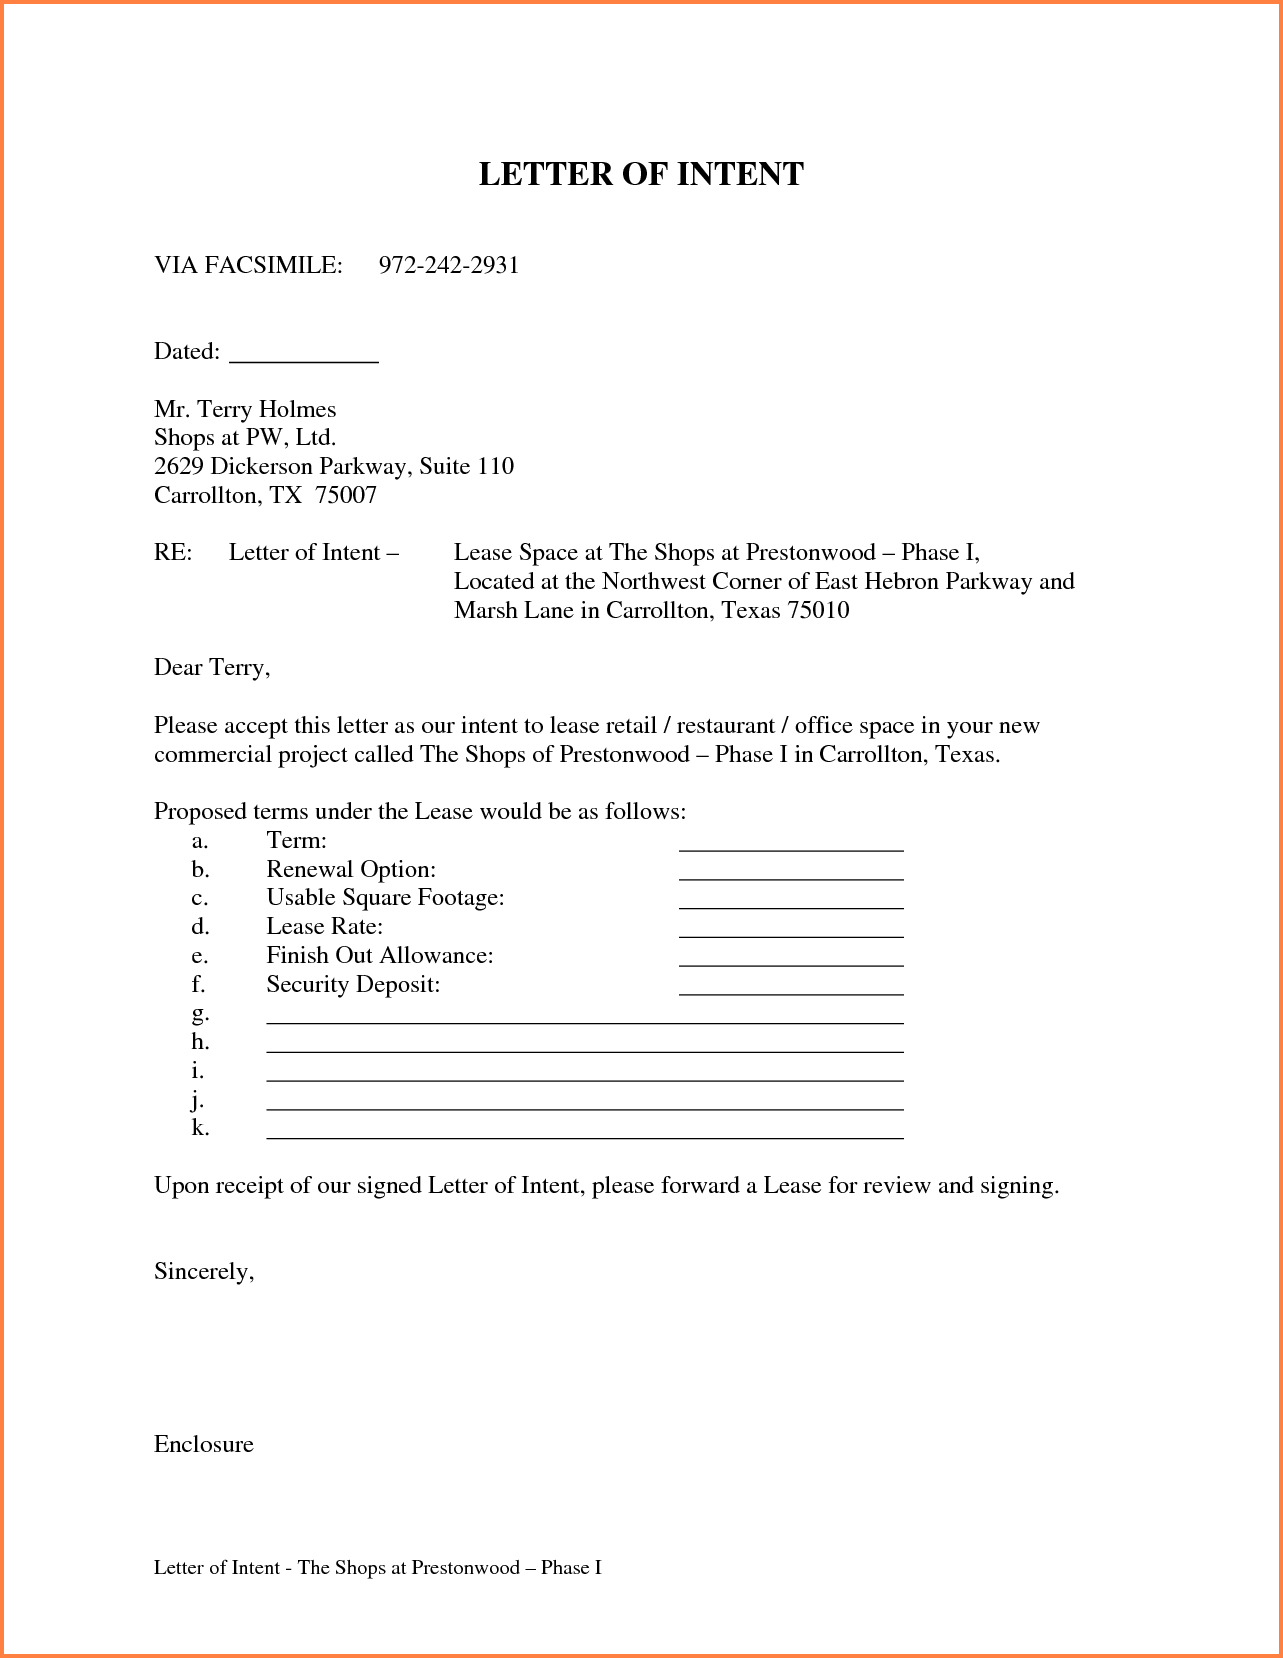 Letter Of Intent to Rent Template - Letter Intent for Lease Sample Beautiful Letter Intent for